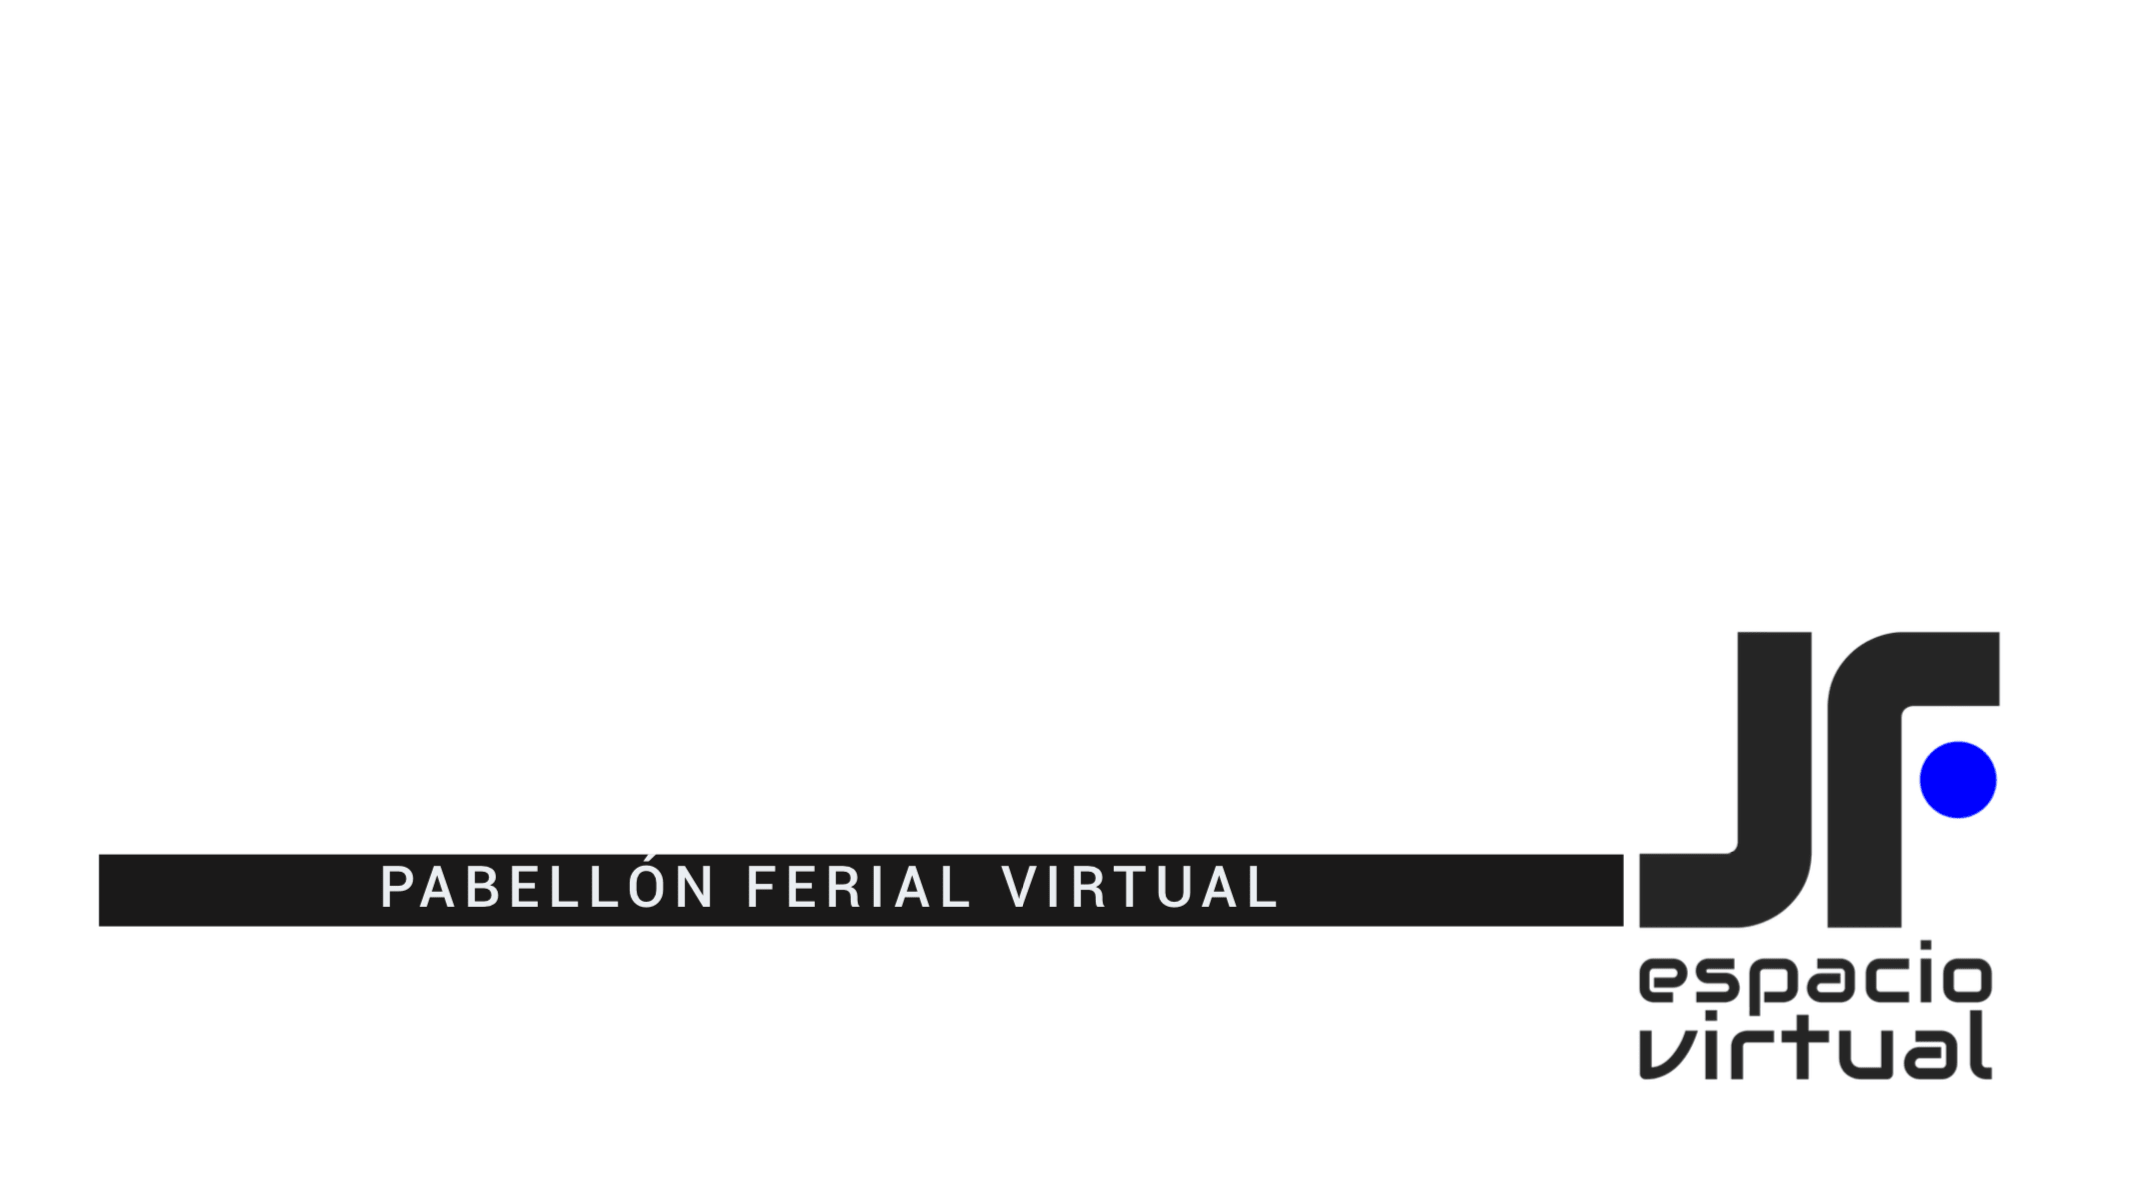 Pabellon ferial virtual jf espacio virtual 1-min